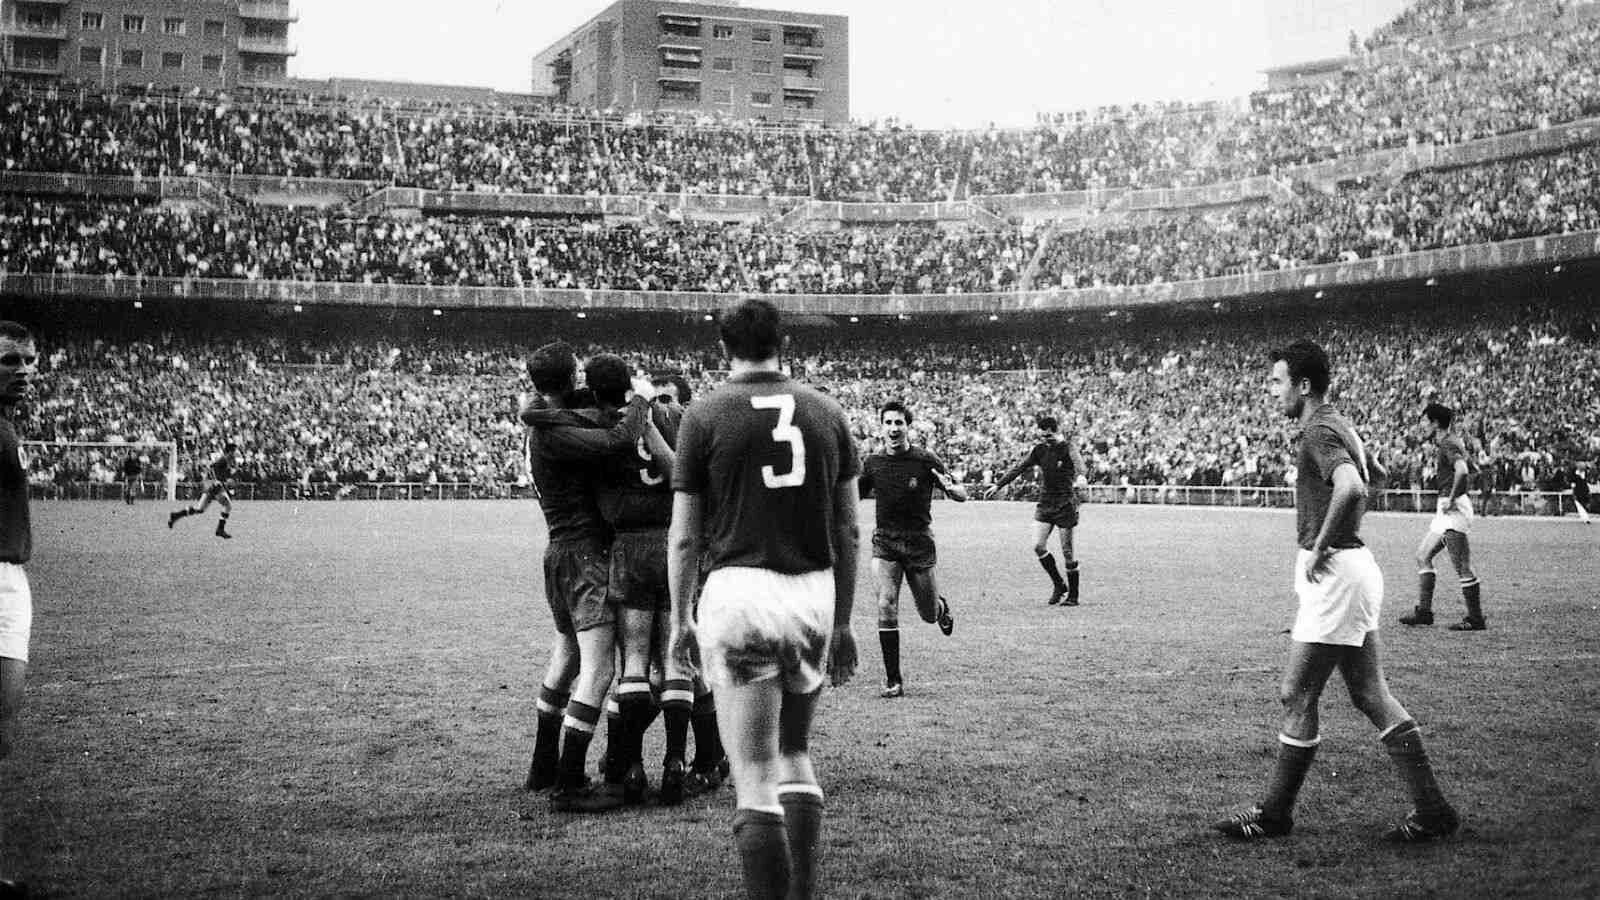 Spain 2 USSR 1 in 1964 in Madrid. It's all over and Spain win their first  tournament after beating the USSR in the Final of Euro '64. | Футбол, Ретро